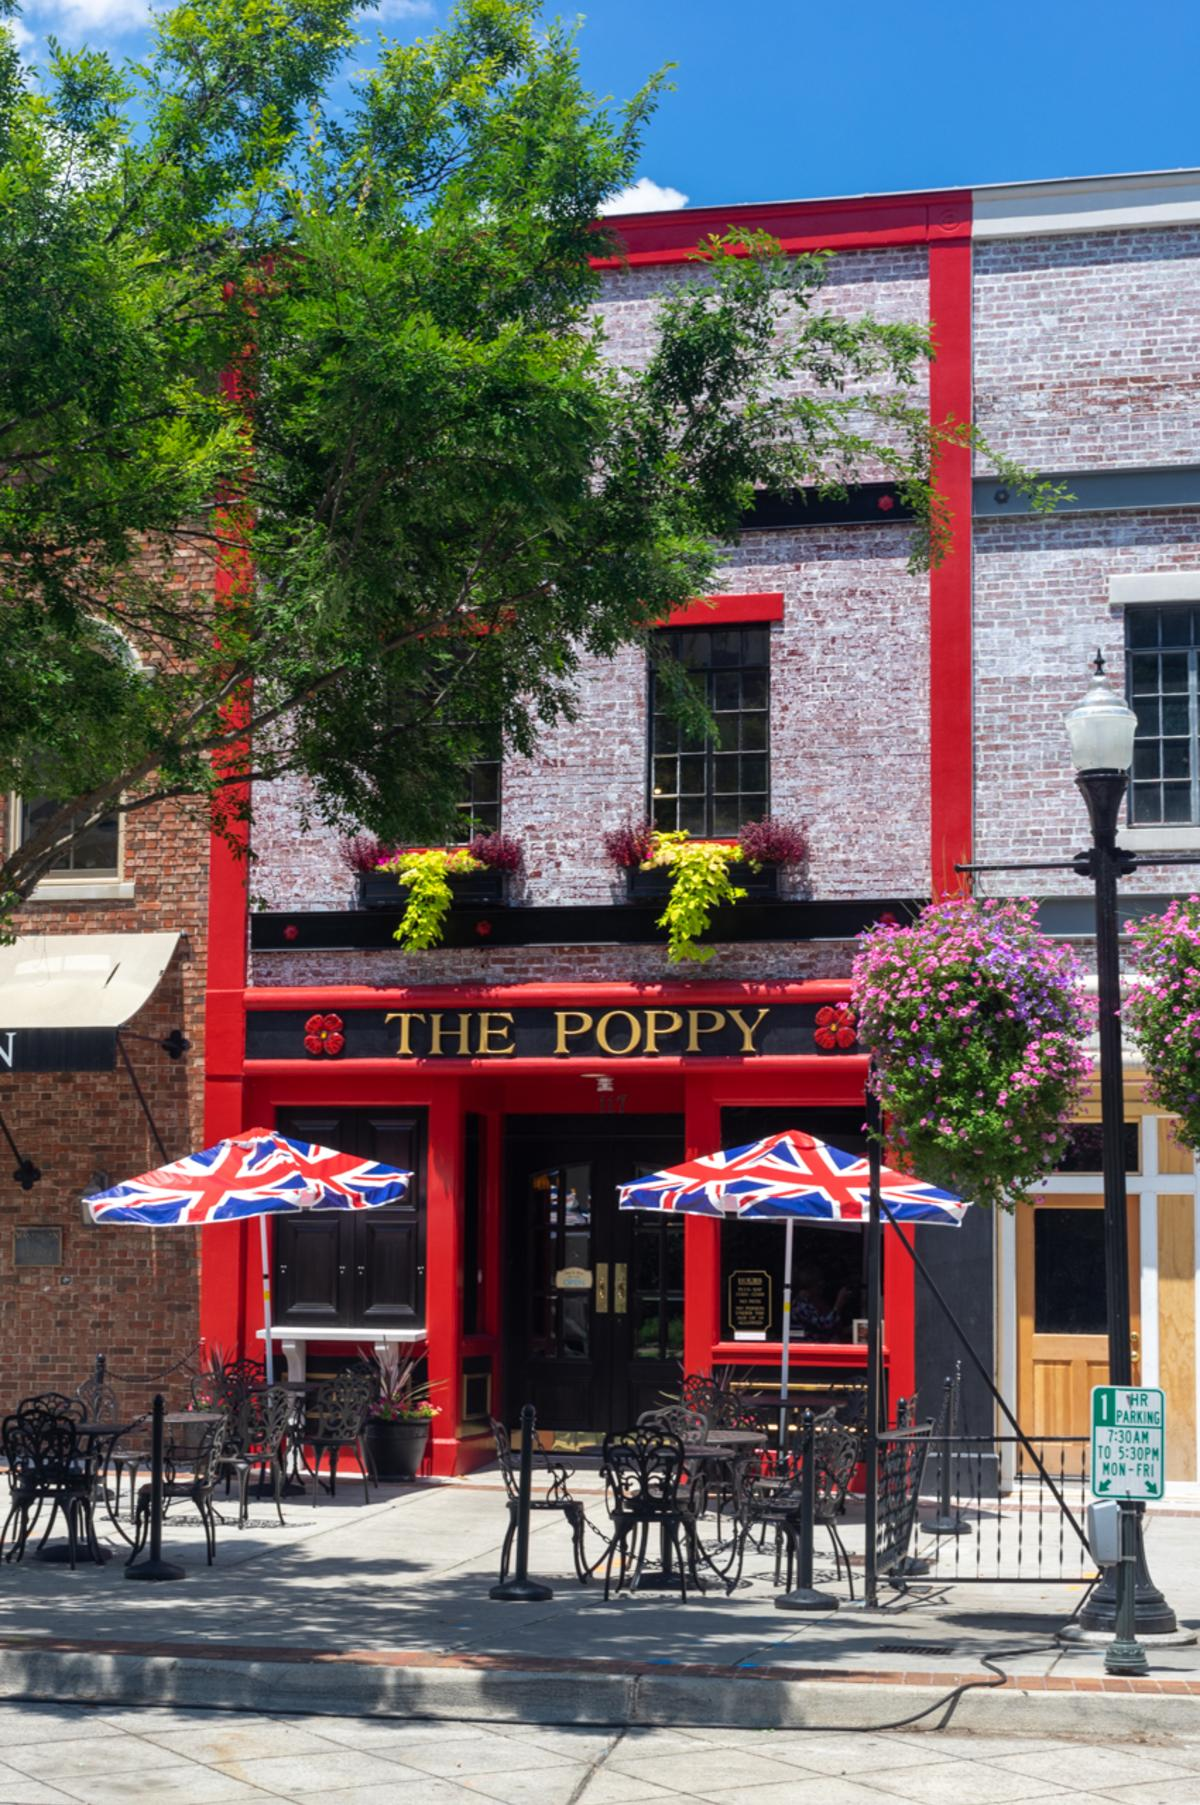 The Poppy in Huntsville Alabama